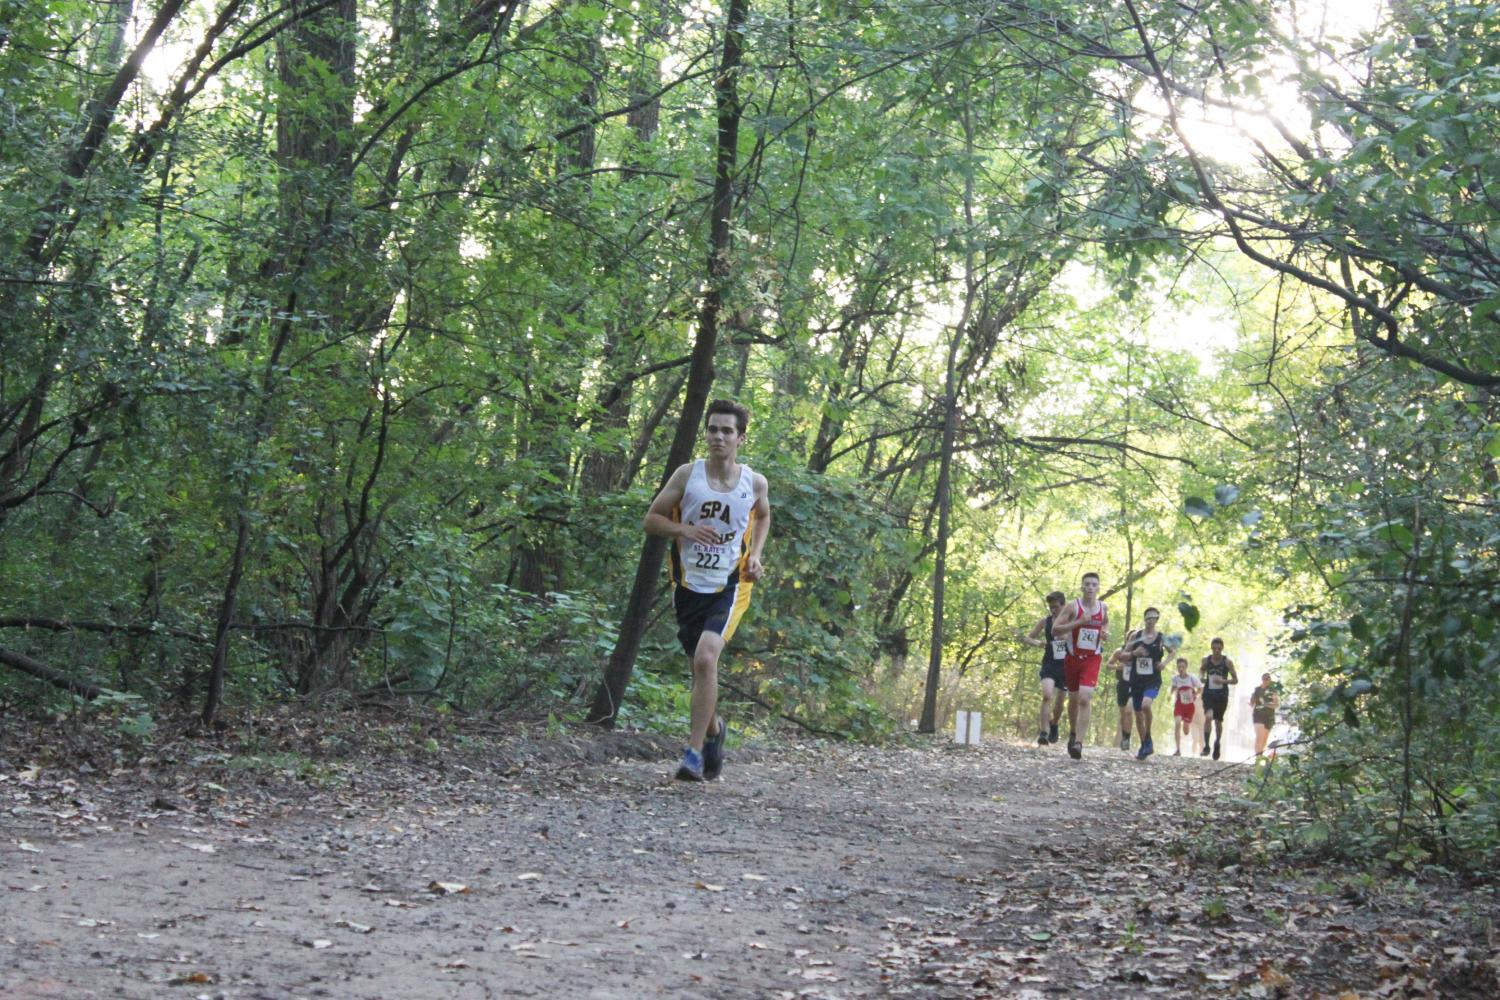 """Junior runner Will Rinkoff paces himself through a forest and ahead of the competition during a September meet. """"The feeling you get when you perform well in competition makes all the hard work you've done seem worth it,"""" co-captain Jonah Spencer said."""